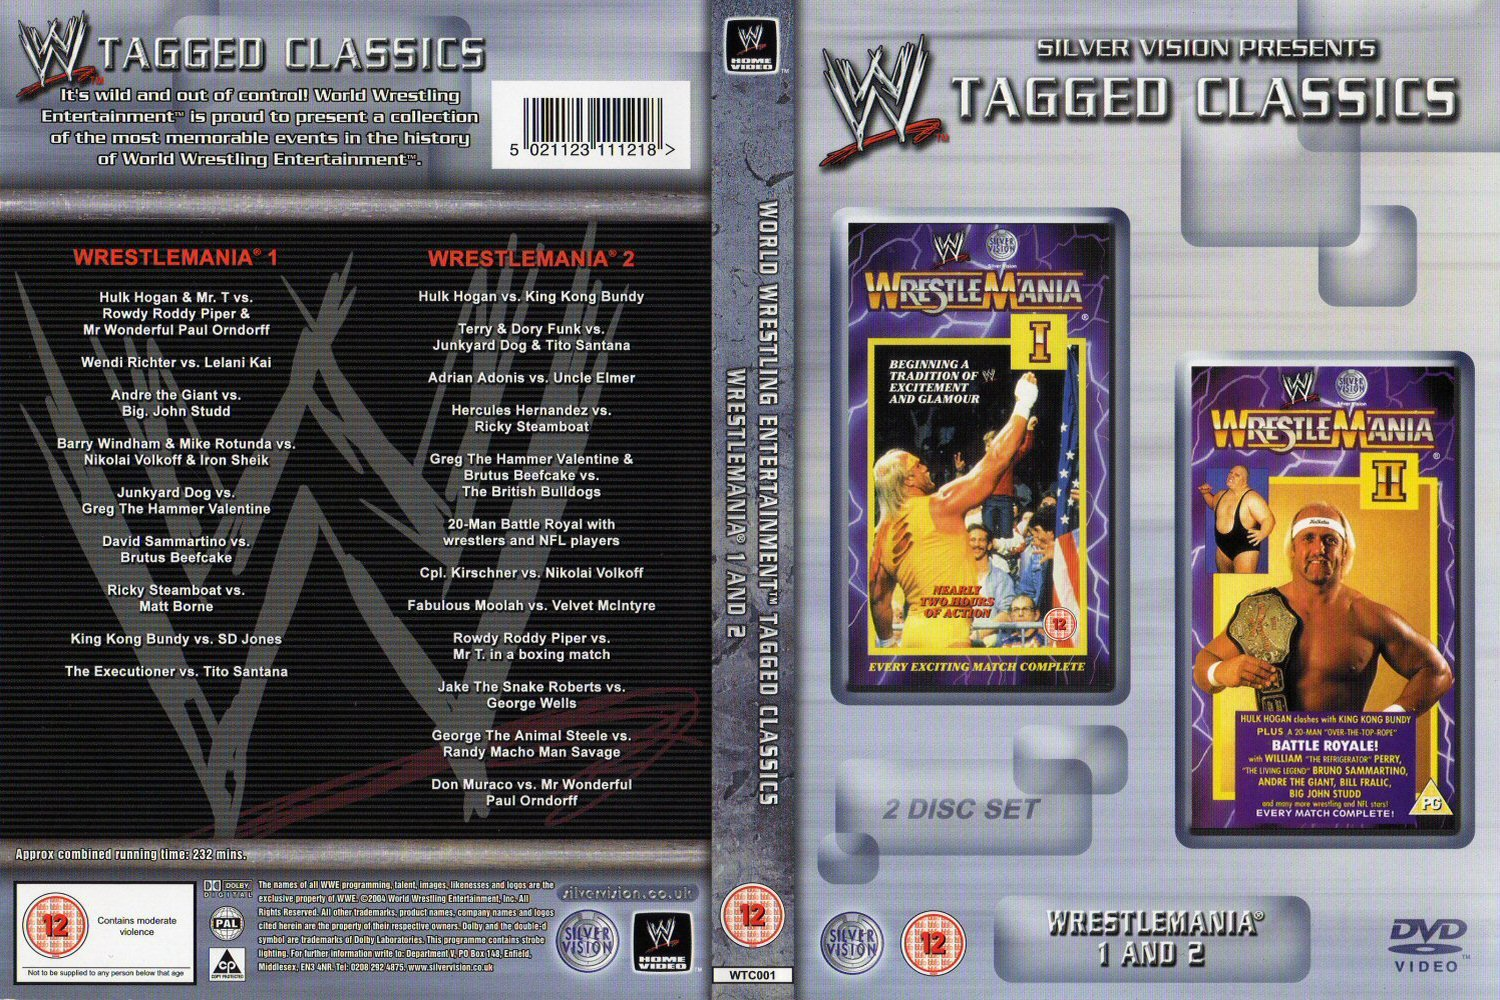 Wwe_Tagged_Classics_Wrestlemania_I_2_Uk-front